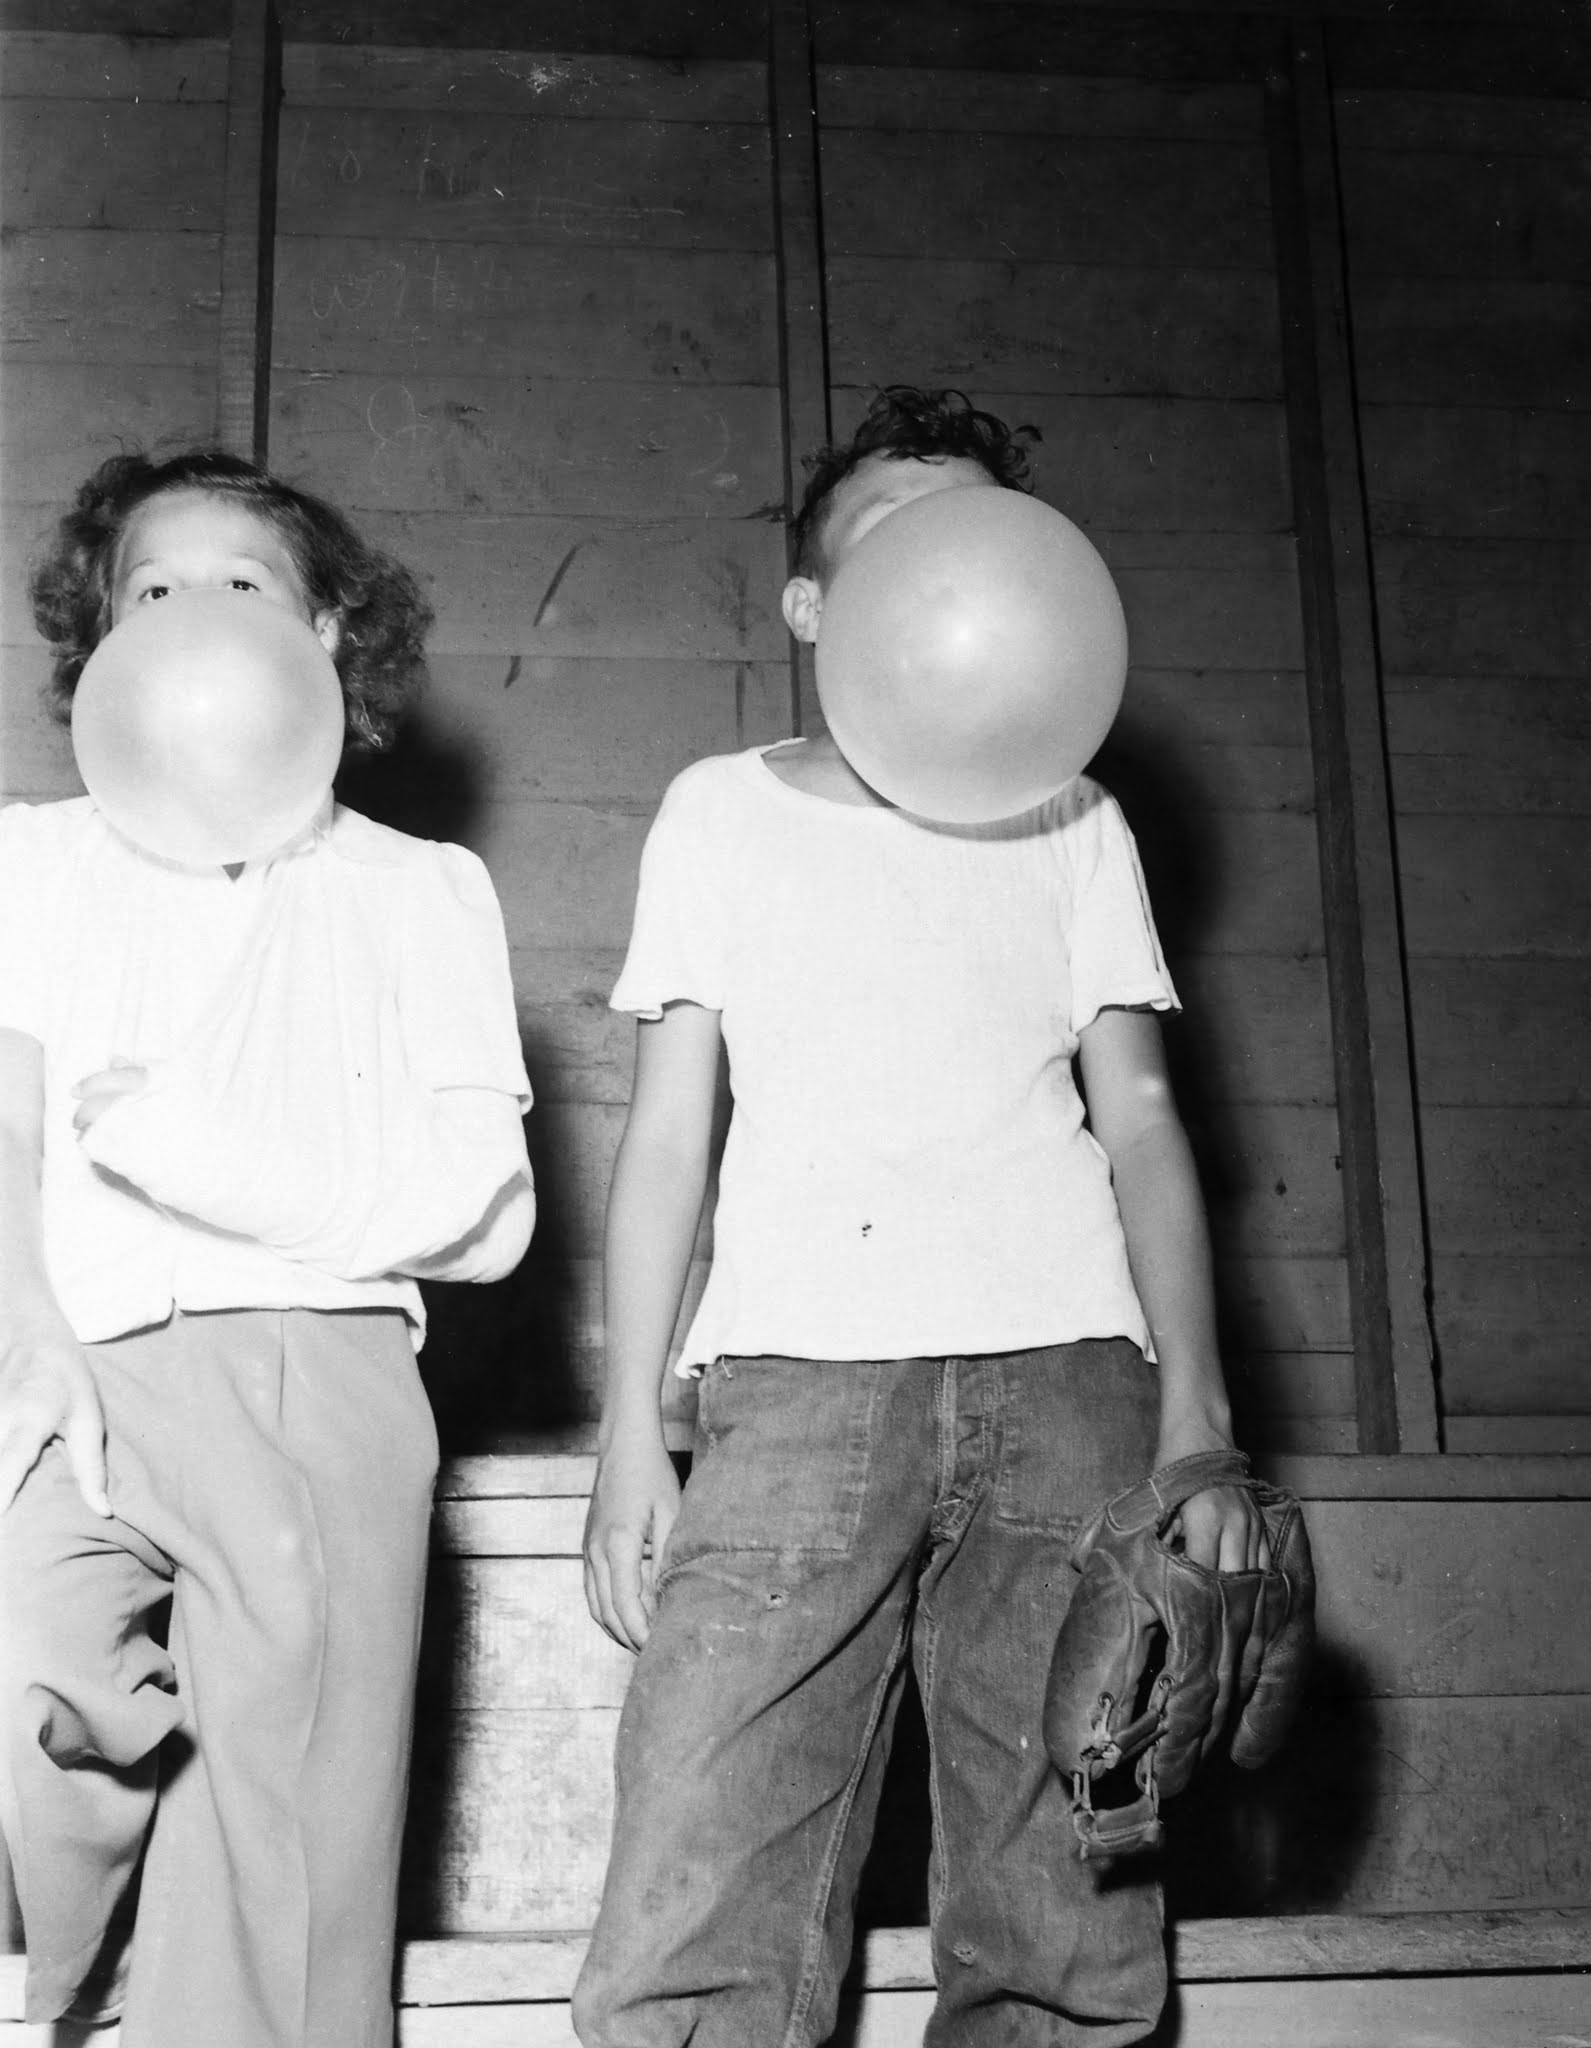 Photo: Bubble Gum blowing Contest